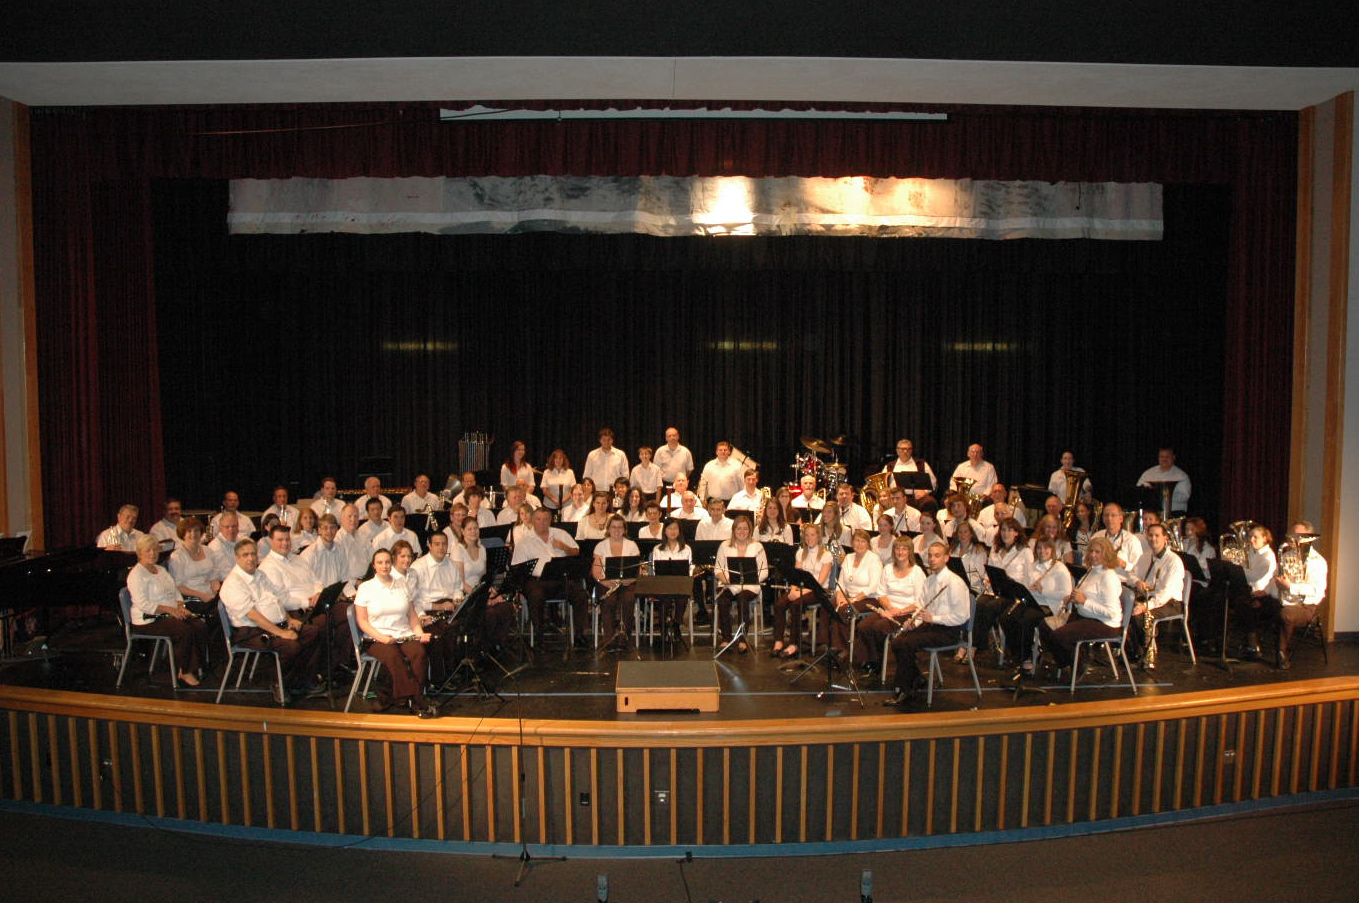 COLTS NECK COMMUNITY BAND MAKES BEAUTIFUL MUSIC FOR 12TH SEASON